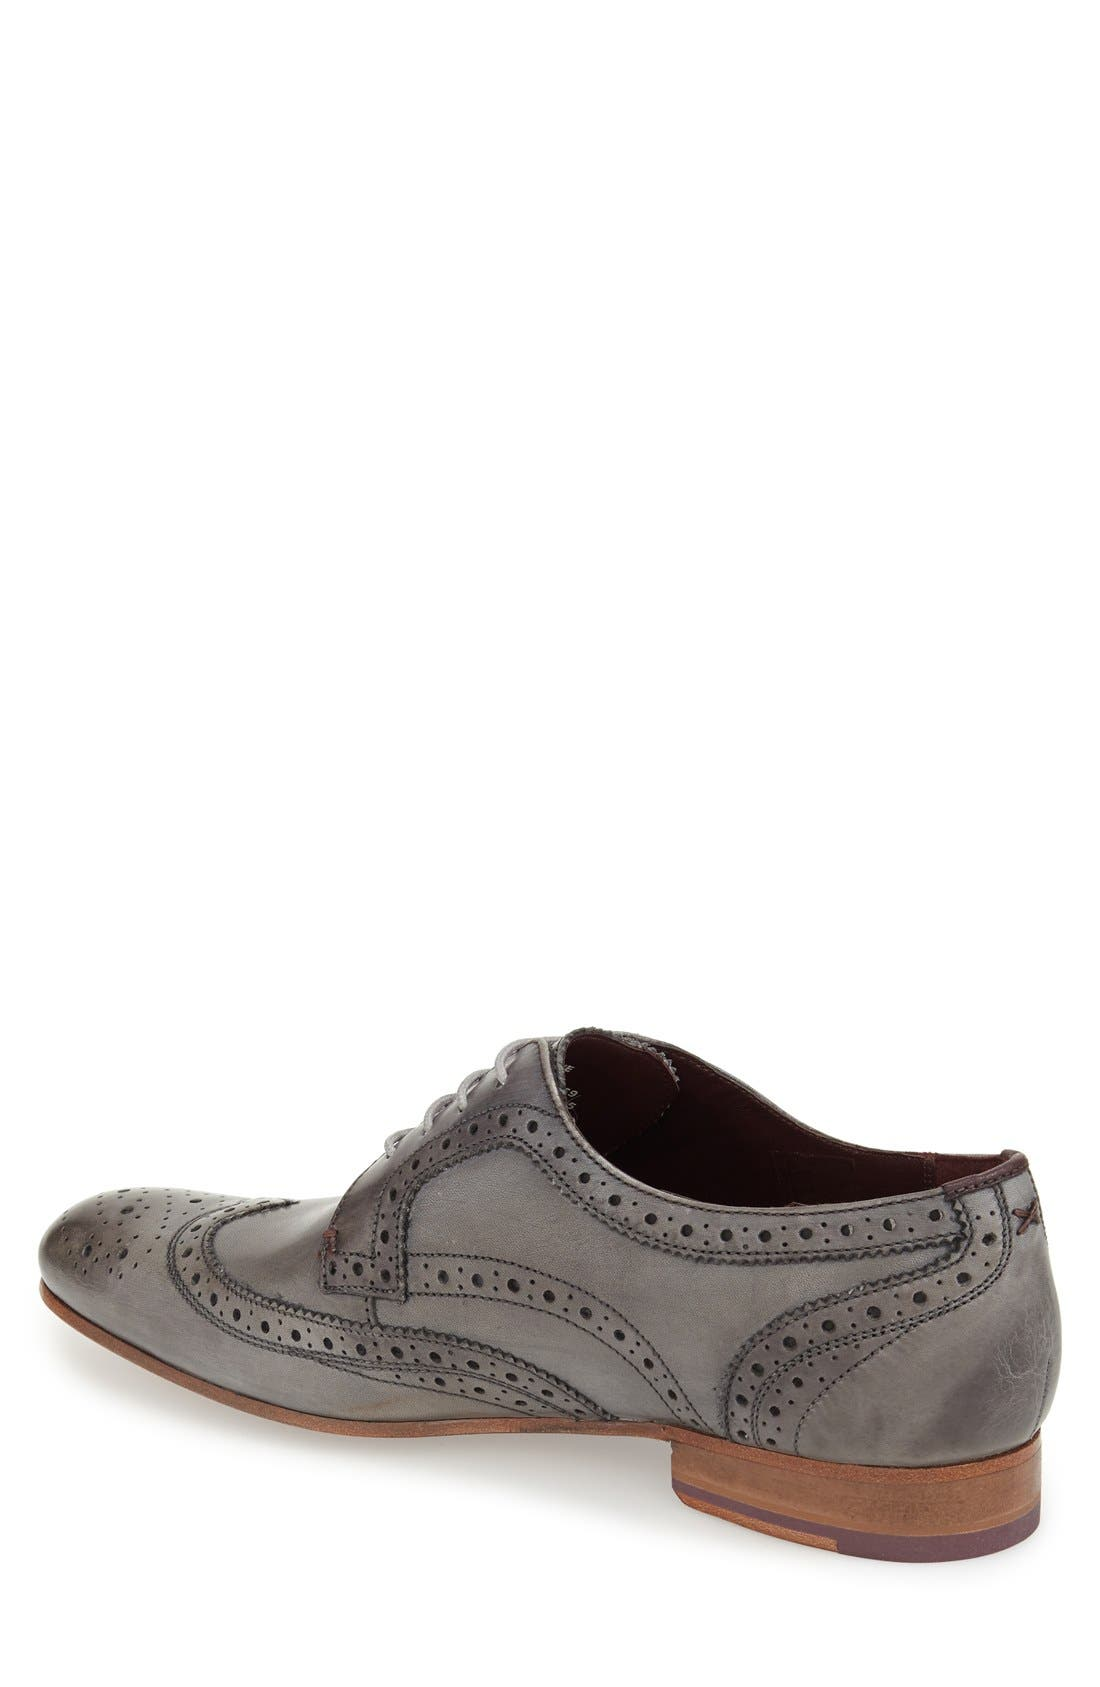 'Gryene' Wingtip Oxford,                             Alternate thumbnail 2, color,                             020